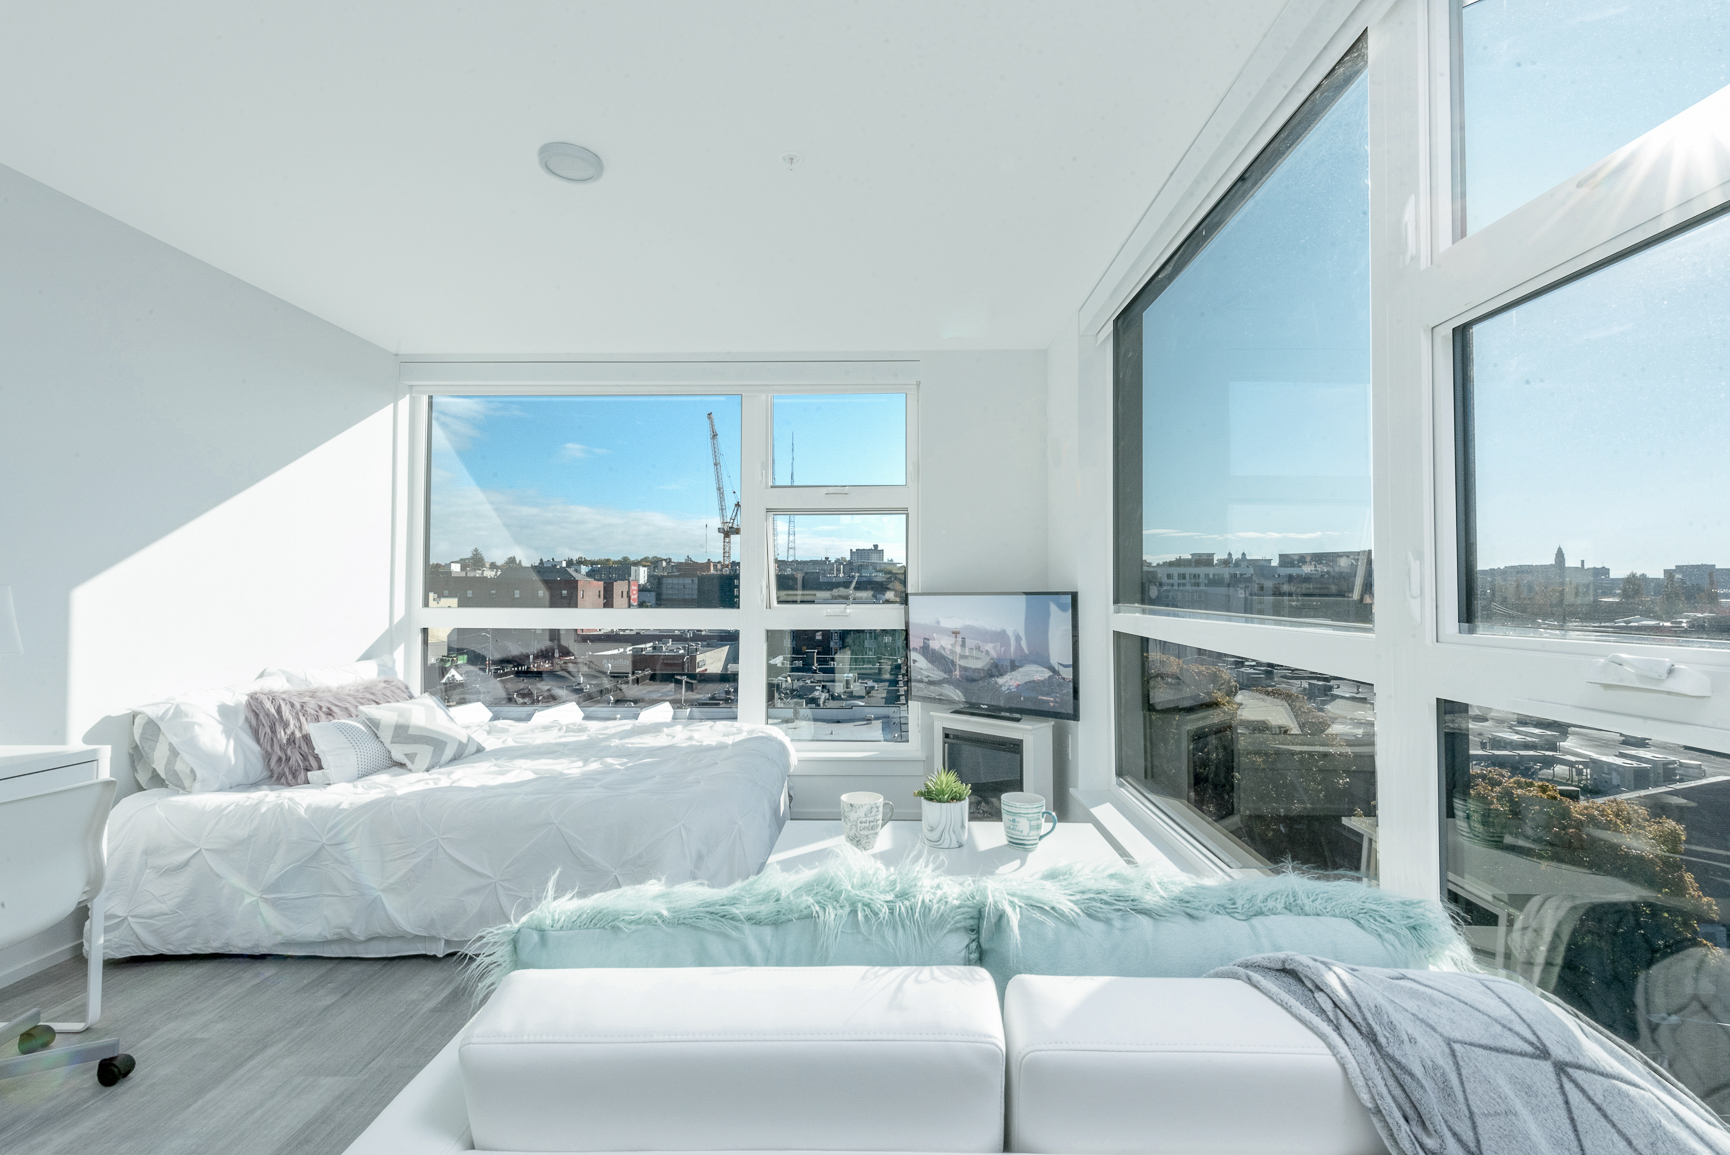 Studio bedroom at Pike Flats with large windows and white furniture